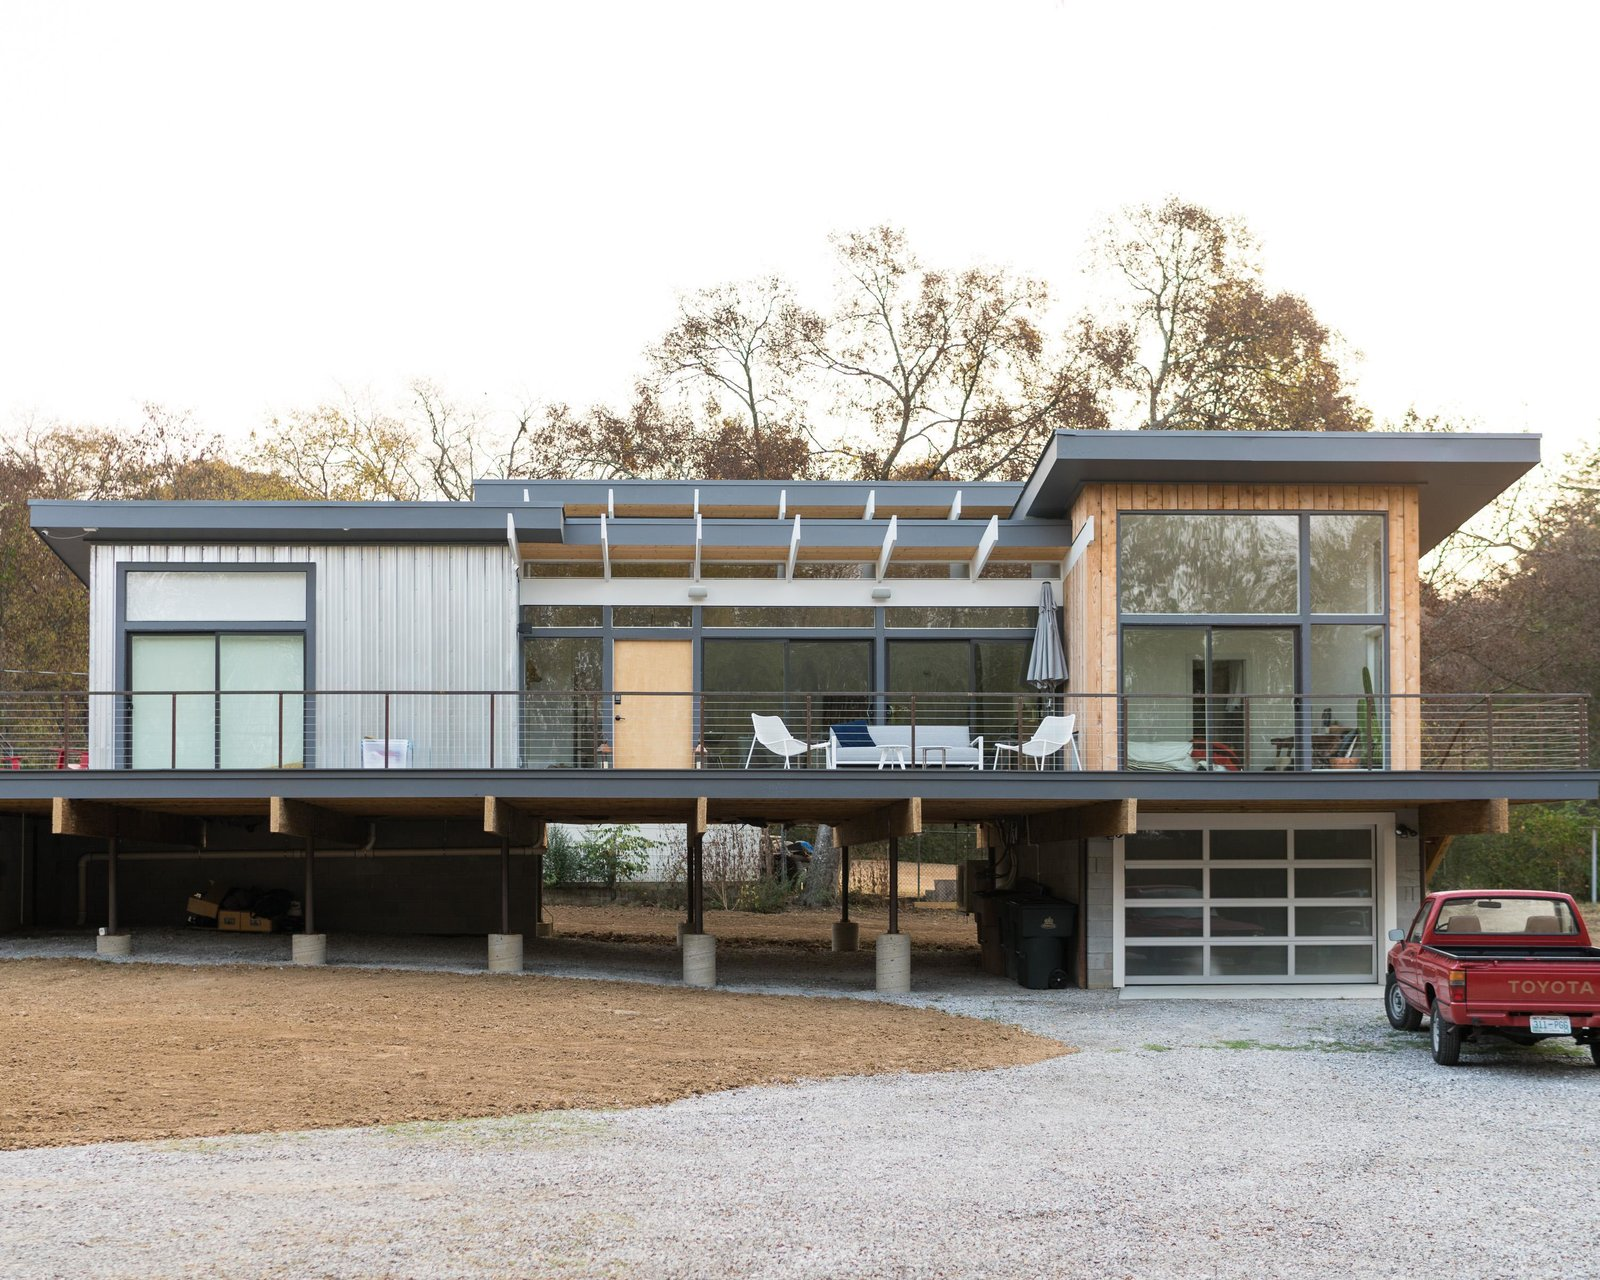 Exterior, Flat RoofLine, House Building Type, Wood Siding Material, and Metal Siding Material Theron Humphrey's new home in Nashville, Tenn.  Photo 1 of 11 in Home Tour: Theron Humphrey of This Wild Idea